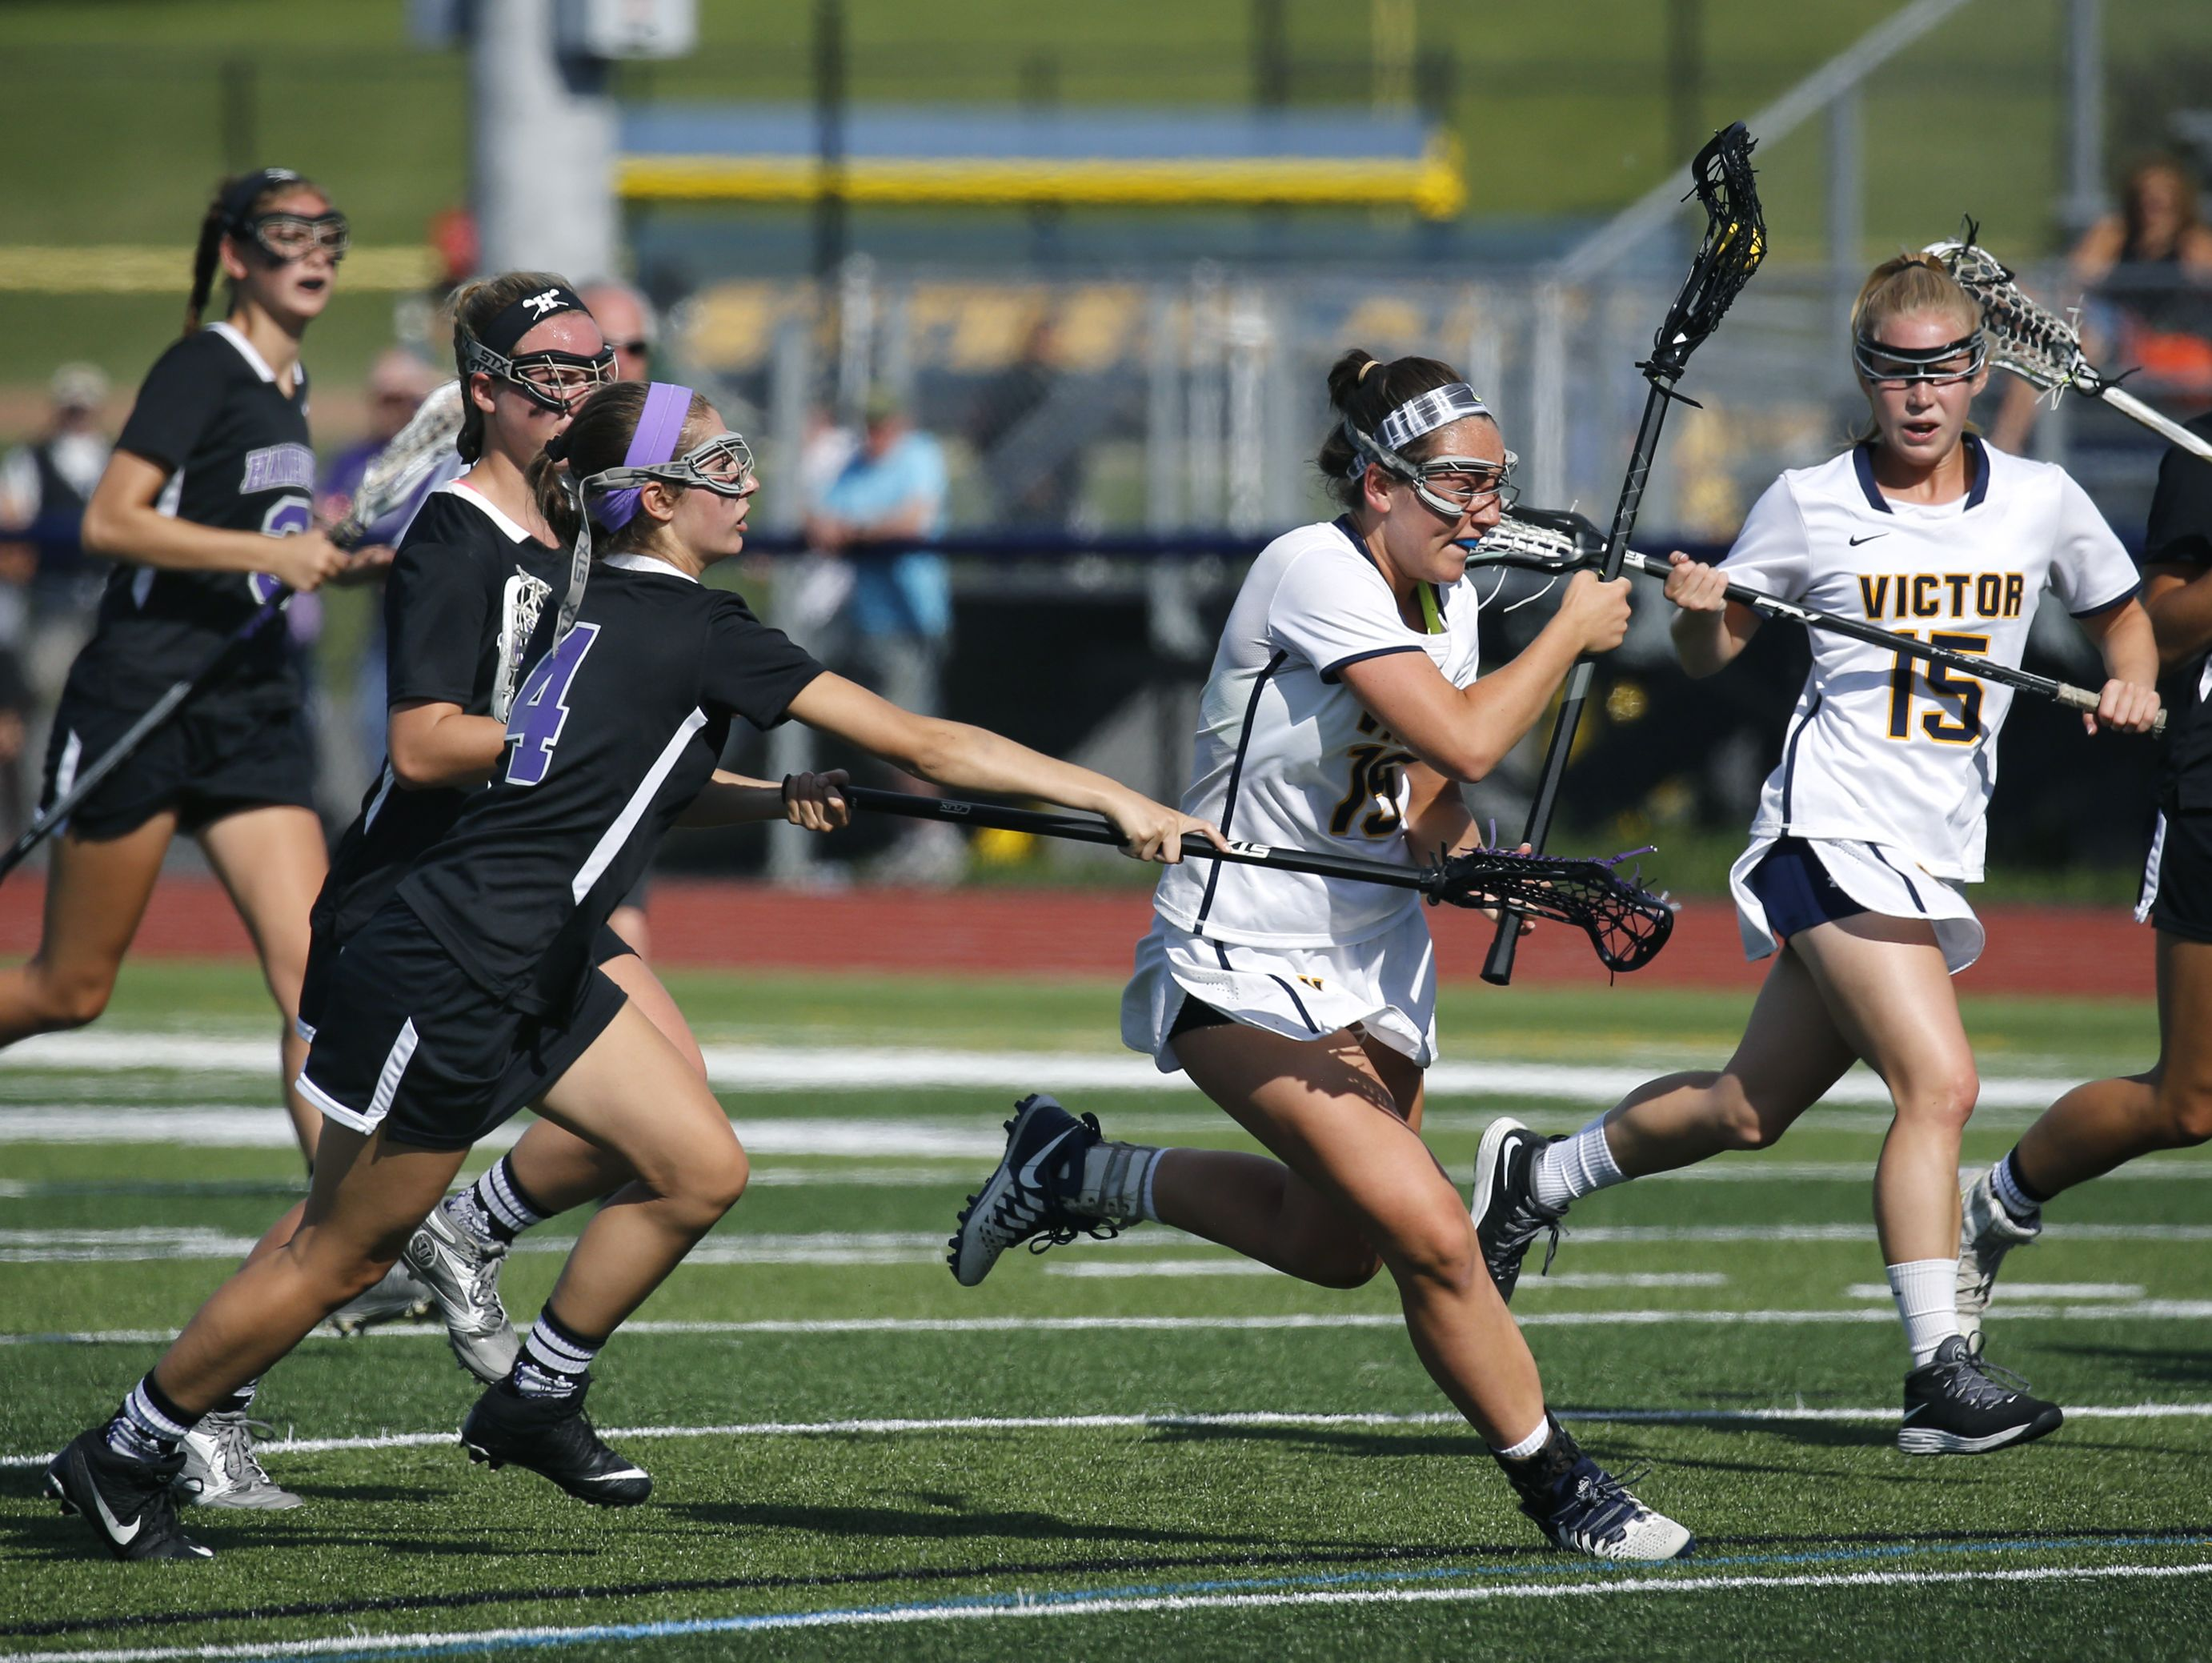 Victor's Bridget Flynn runs with the ball as Hamburg's Maddy Reardon tries blocking her with the stick in the first half at Pittsford Sutherland High School.